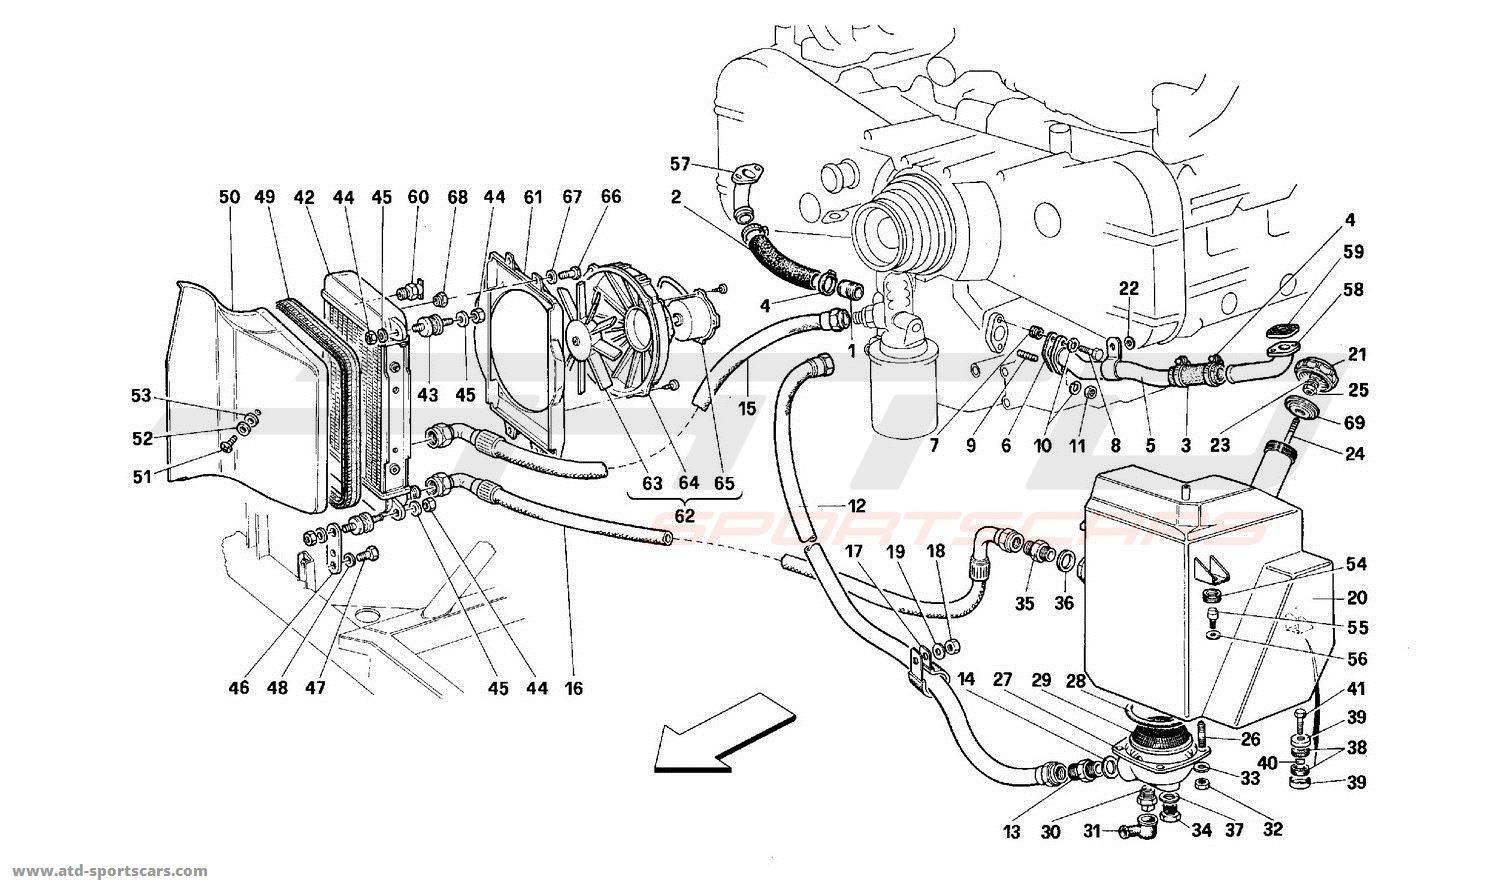 Ferrari 512 Tr Engine Parts At Atd Sportscars